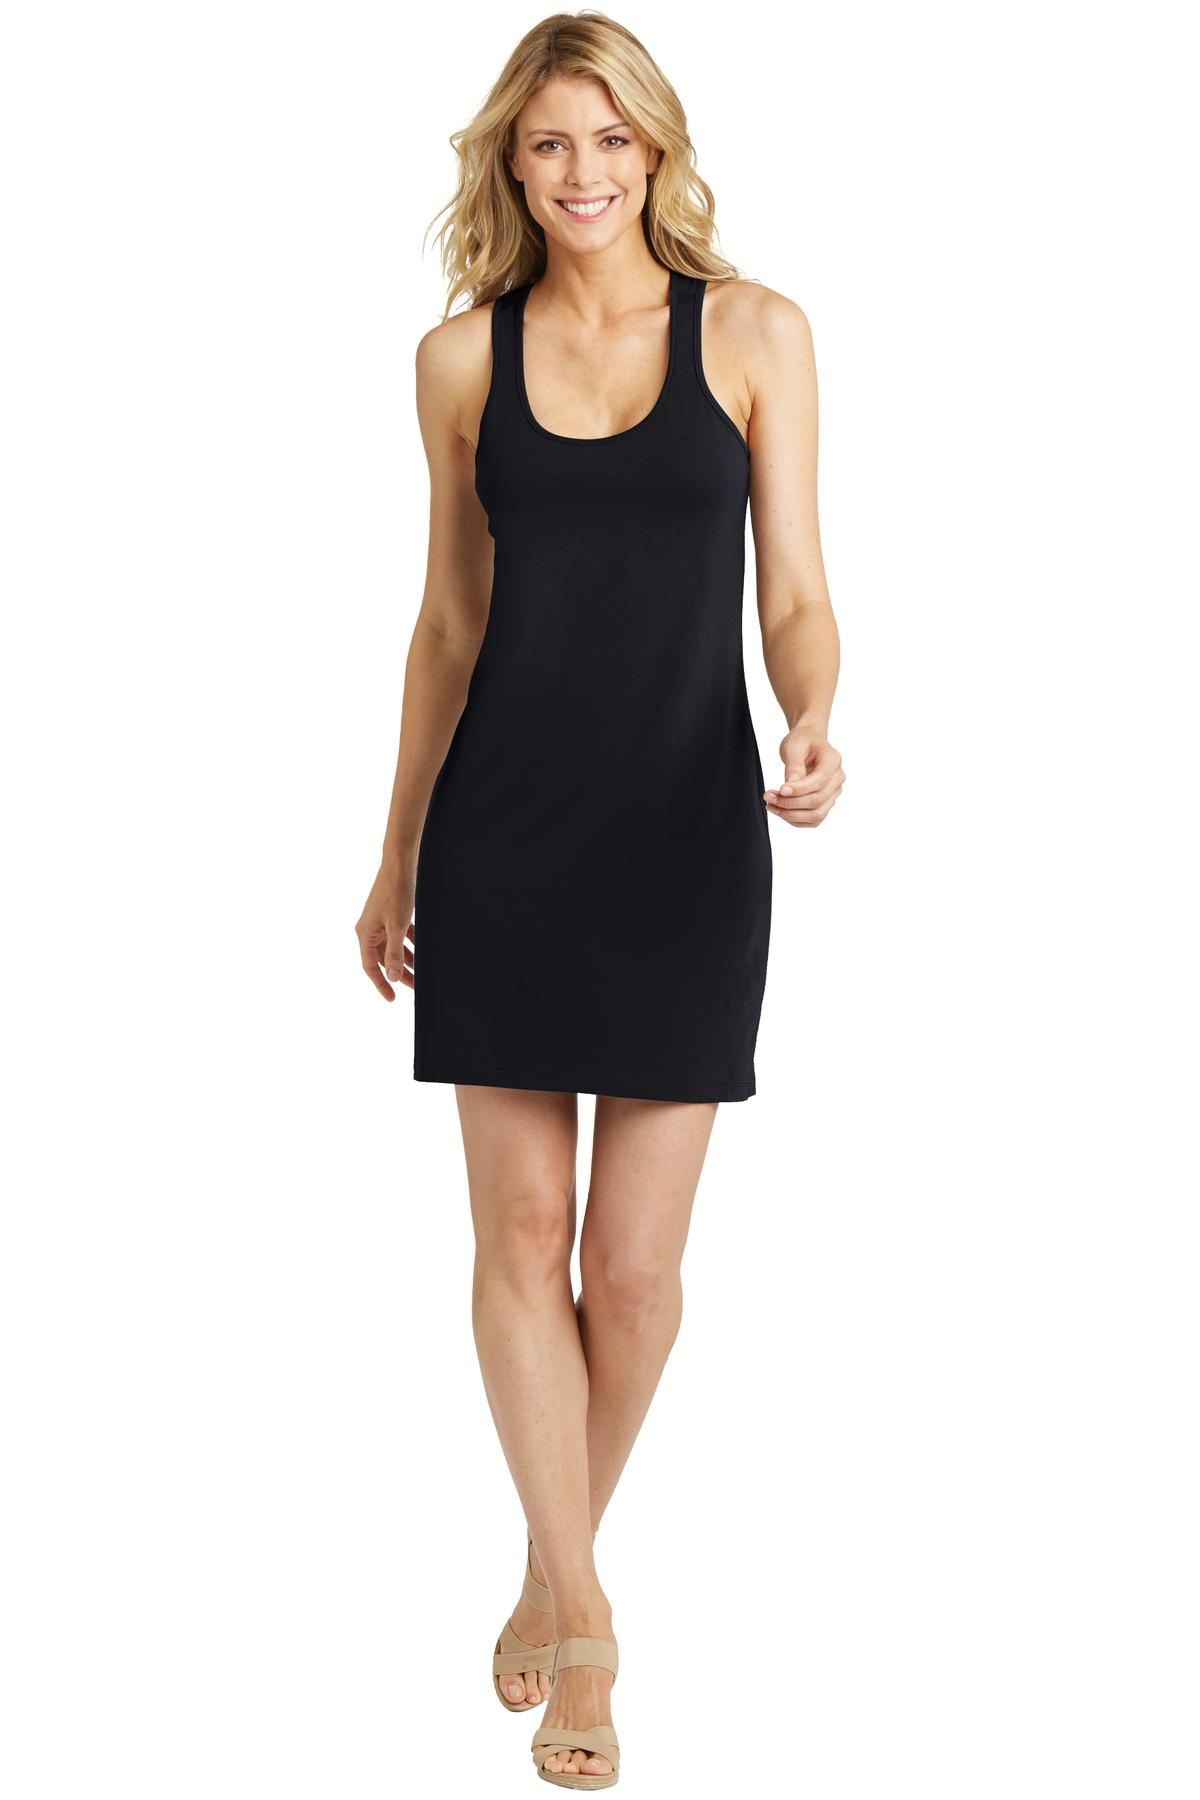 District Made® DM423 - Ladies 60/40 Racerback Dress